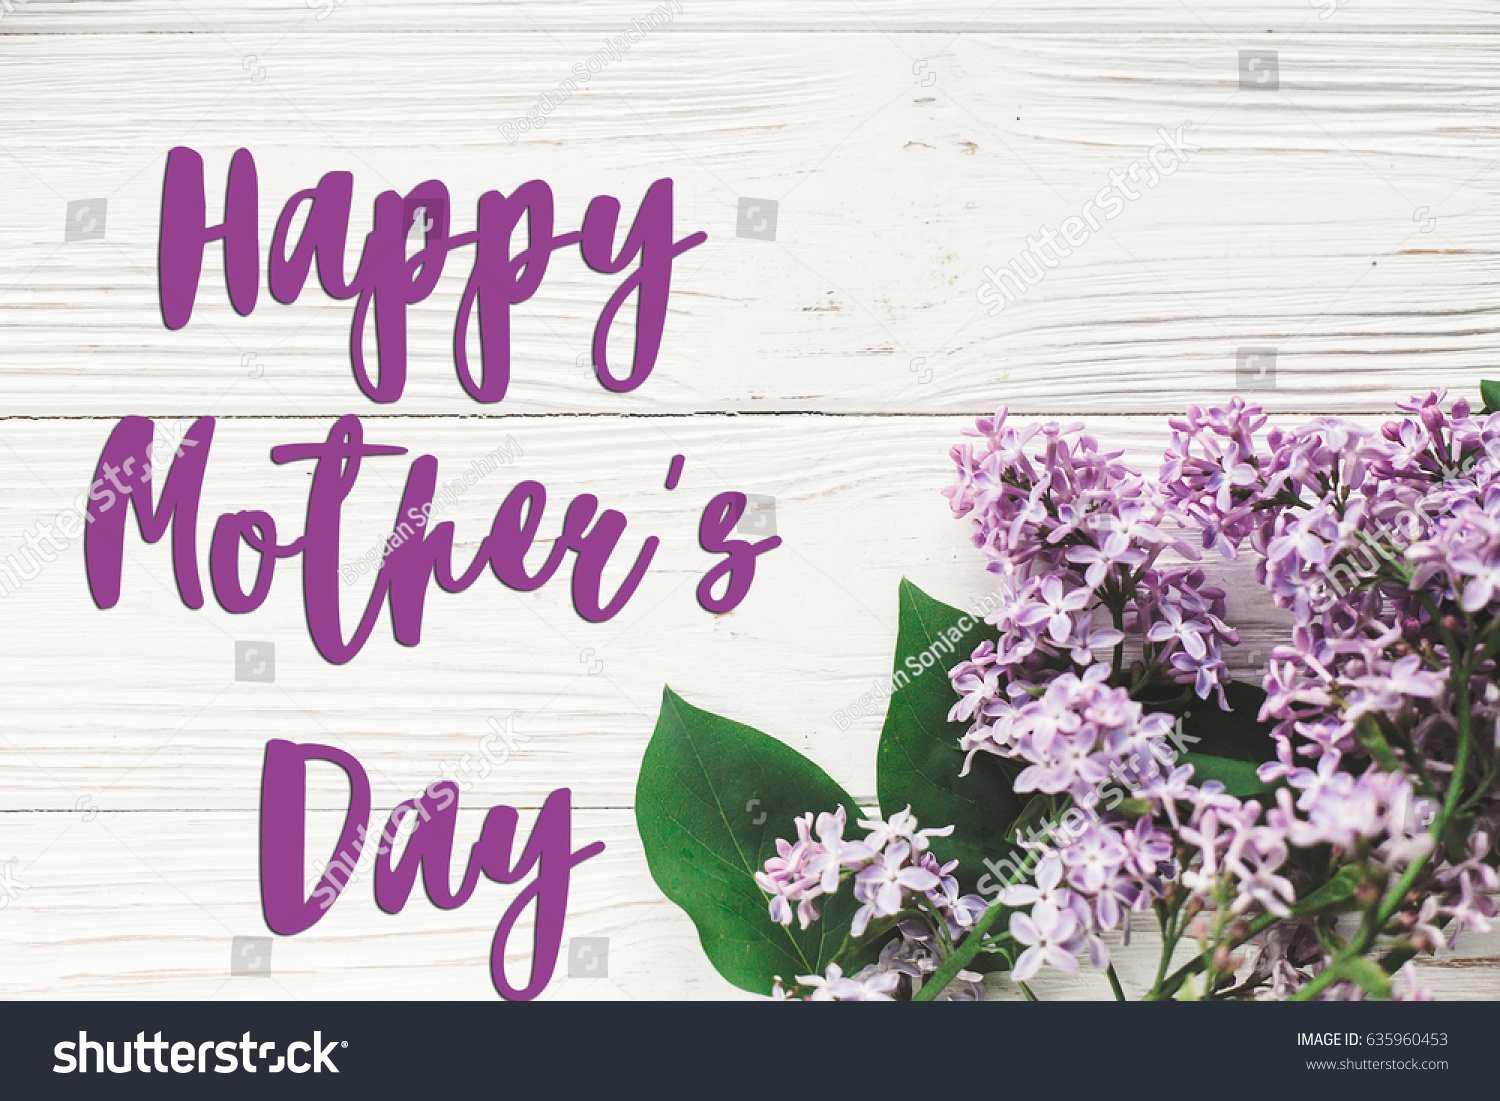 Happy mothers day text sign greeting stock photo 635960453 happy mothers day text sign greeting card gentle purple lilac flowers on white rustic kristyandbryce Choice Image